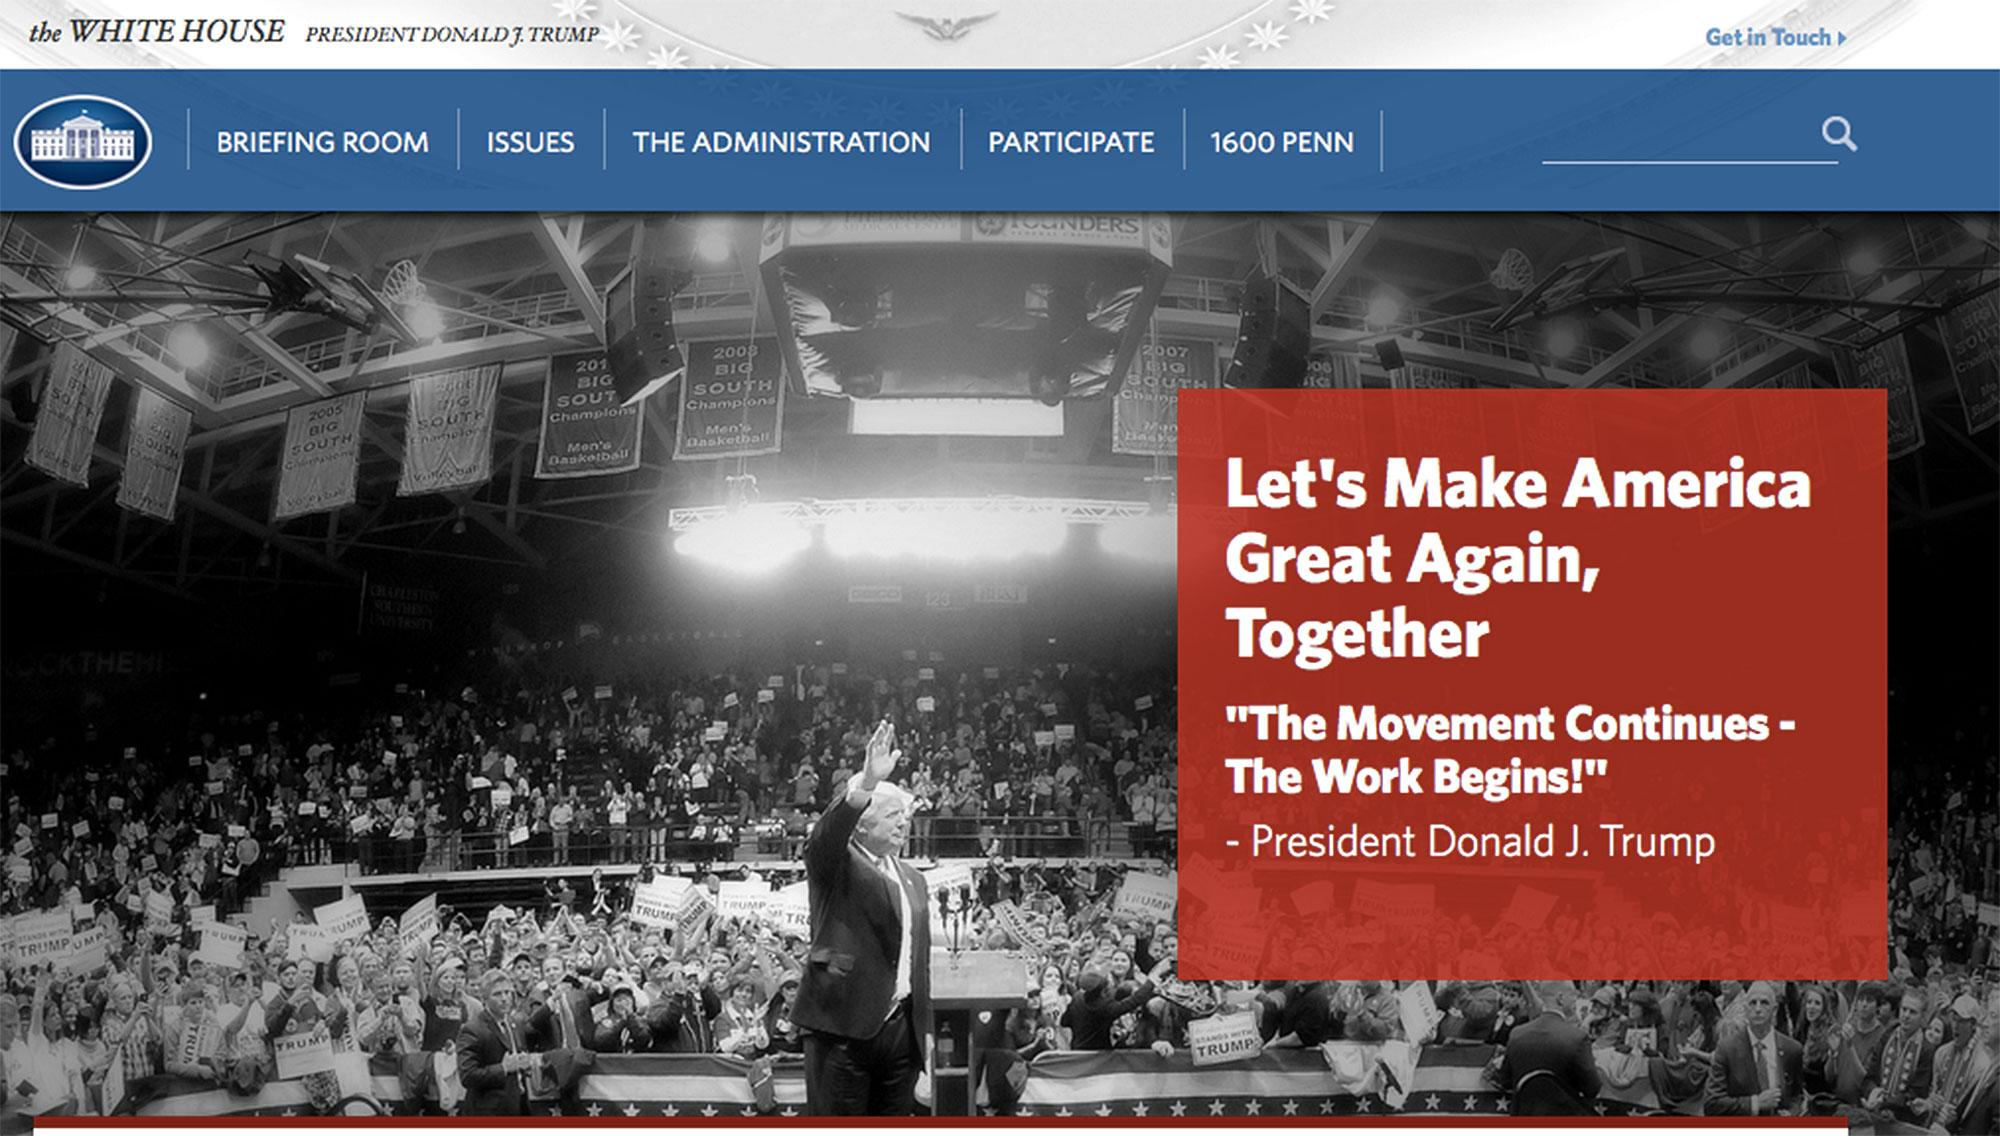 Trump's White House Website Takes Down Official Pages on Civil Rights, Climate Change, LGBT Rights